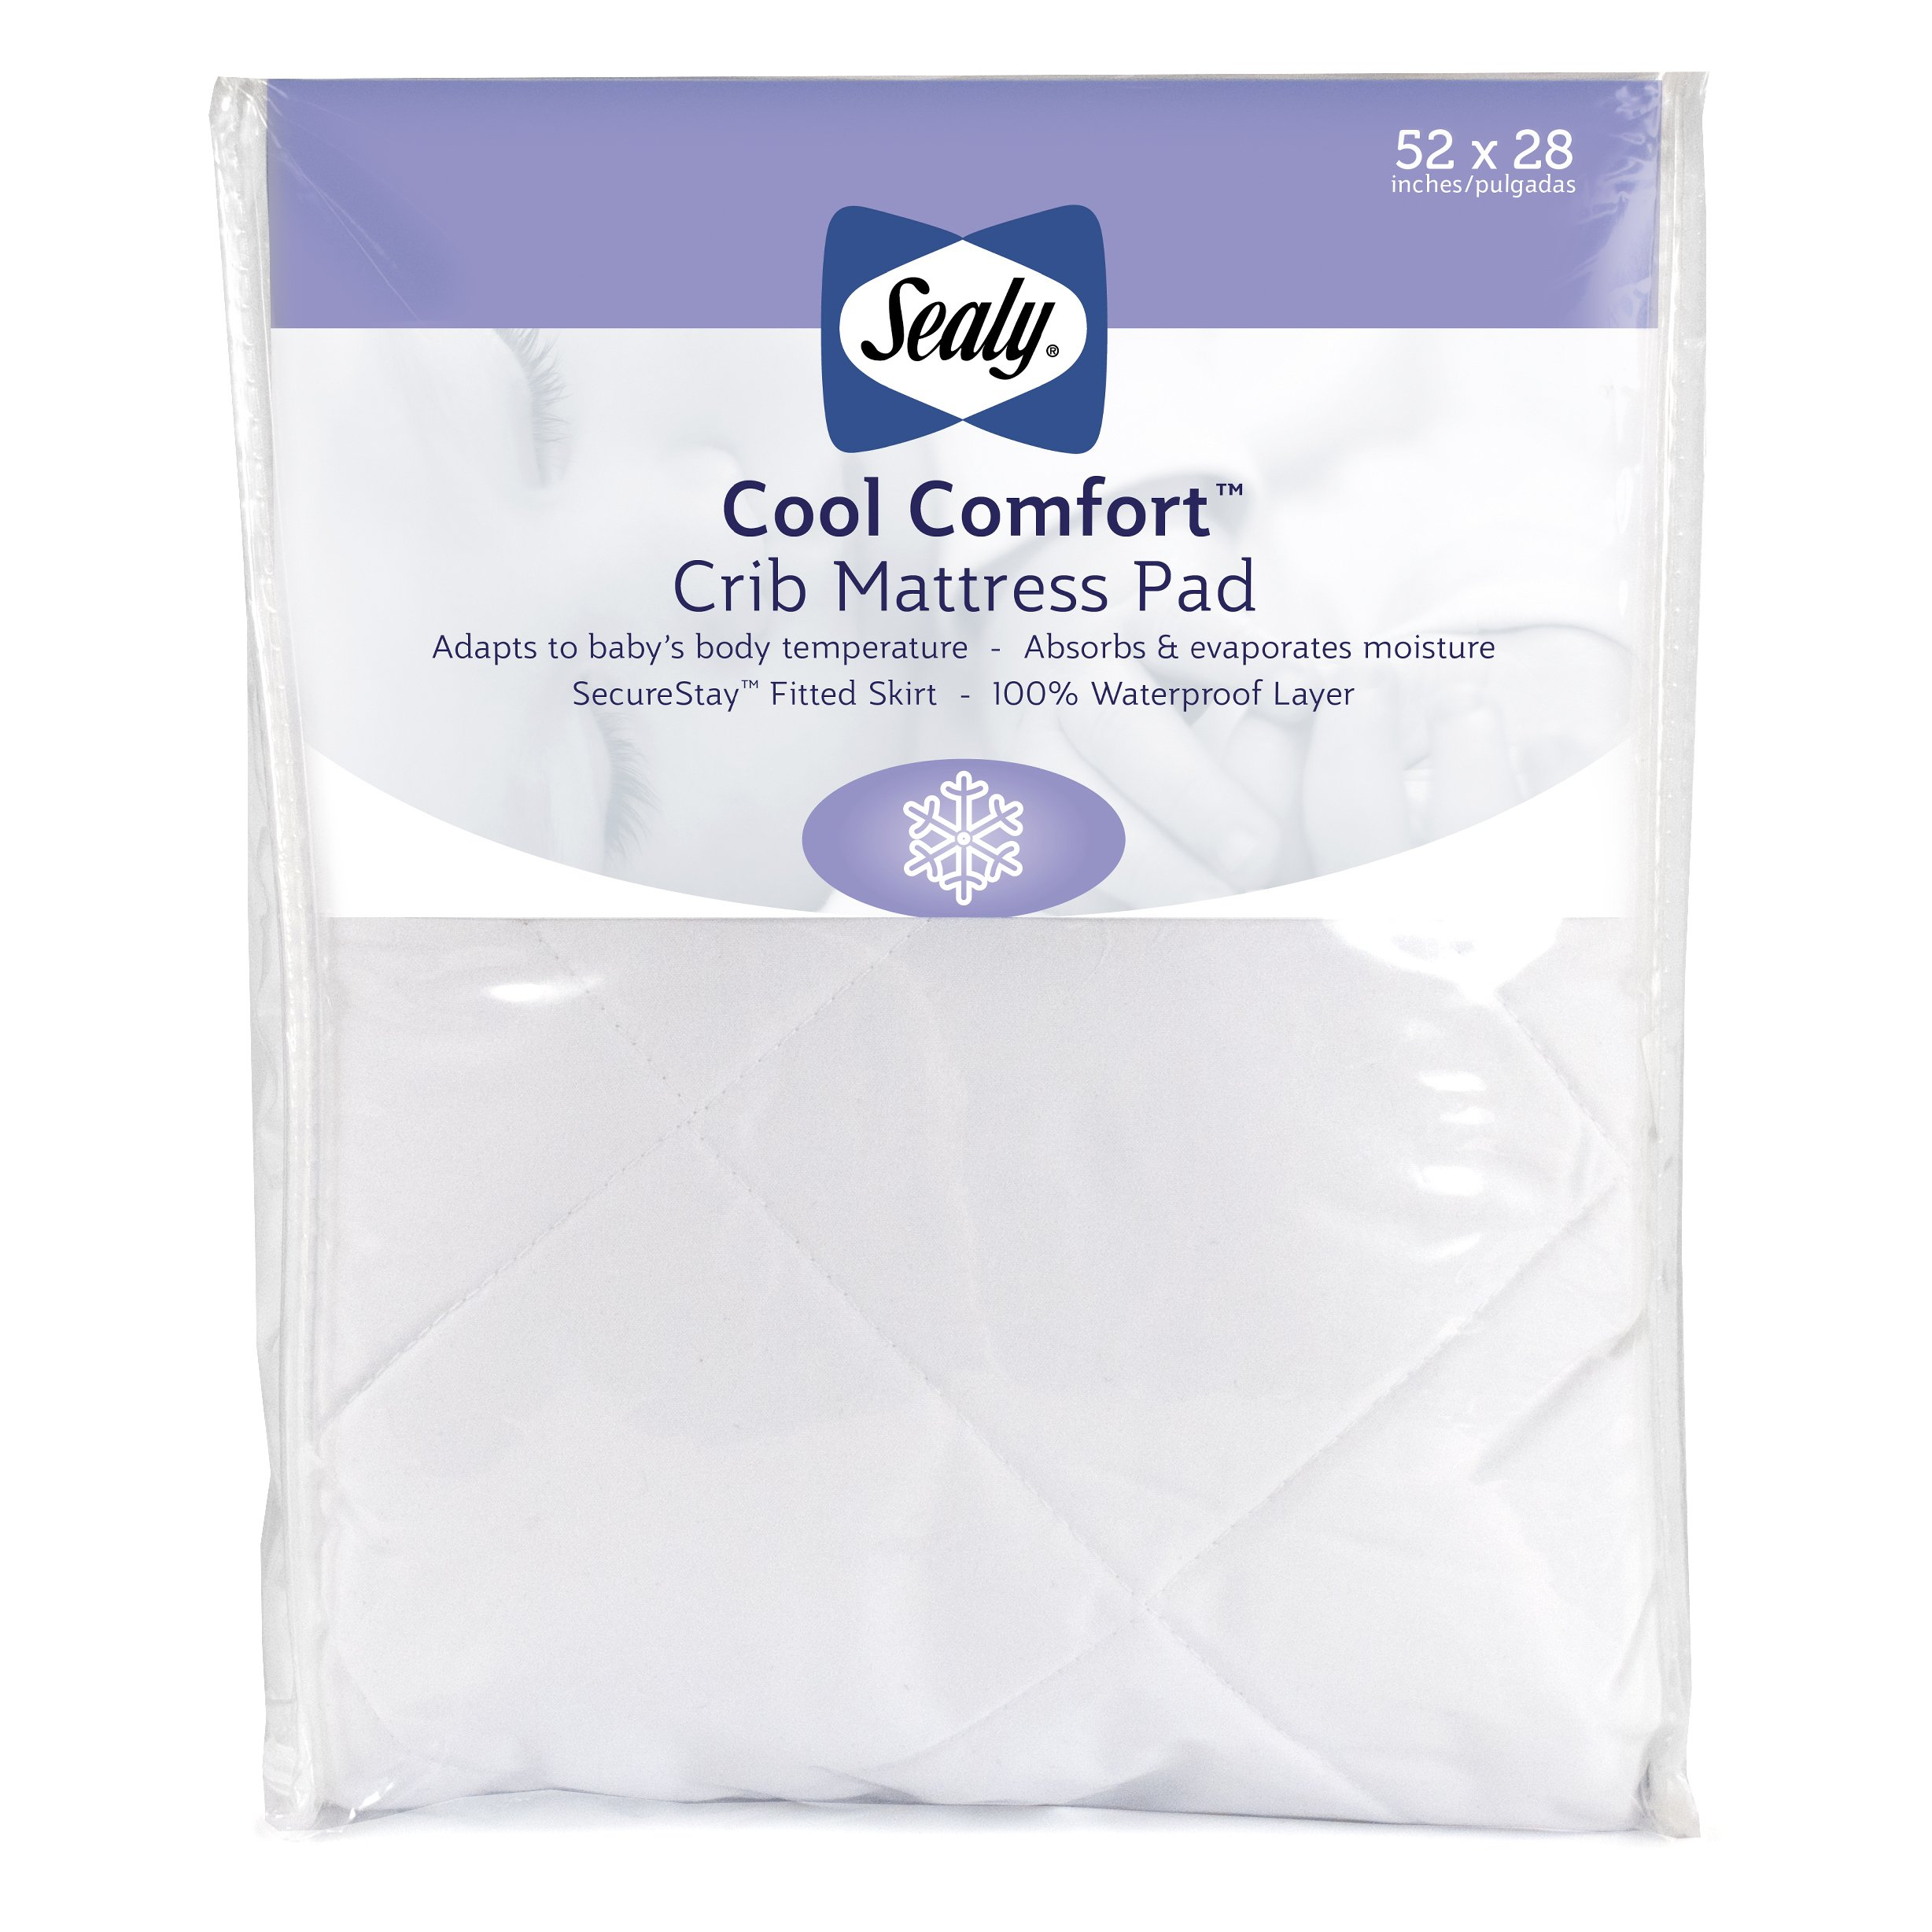 Sealy Cool Comfort Fitted Hypoallergenic Toddler & Baby Crib Mattress Pad/Protector - 100% Waterproof Layer, White, 52'' x 28'' by Sealy